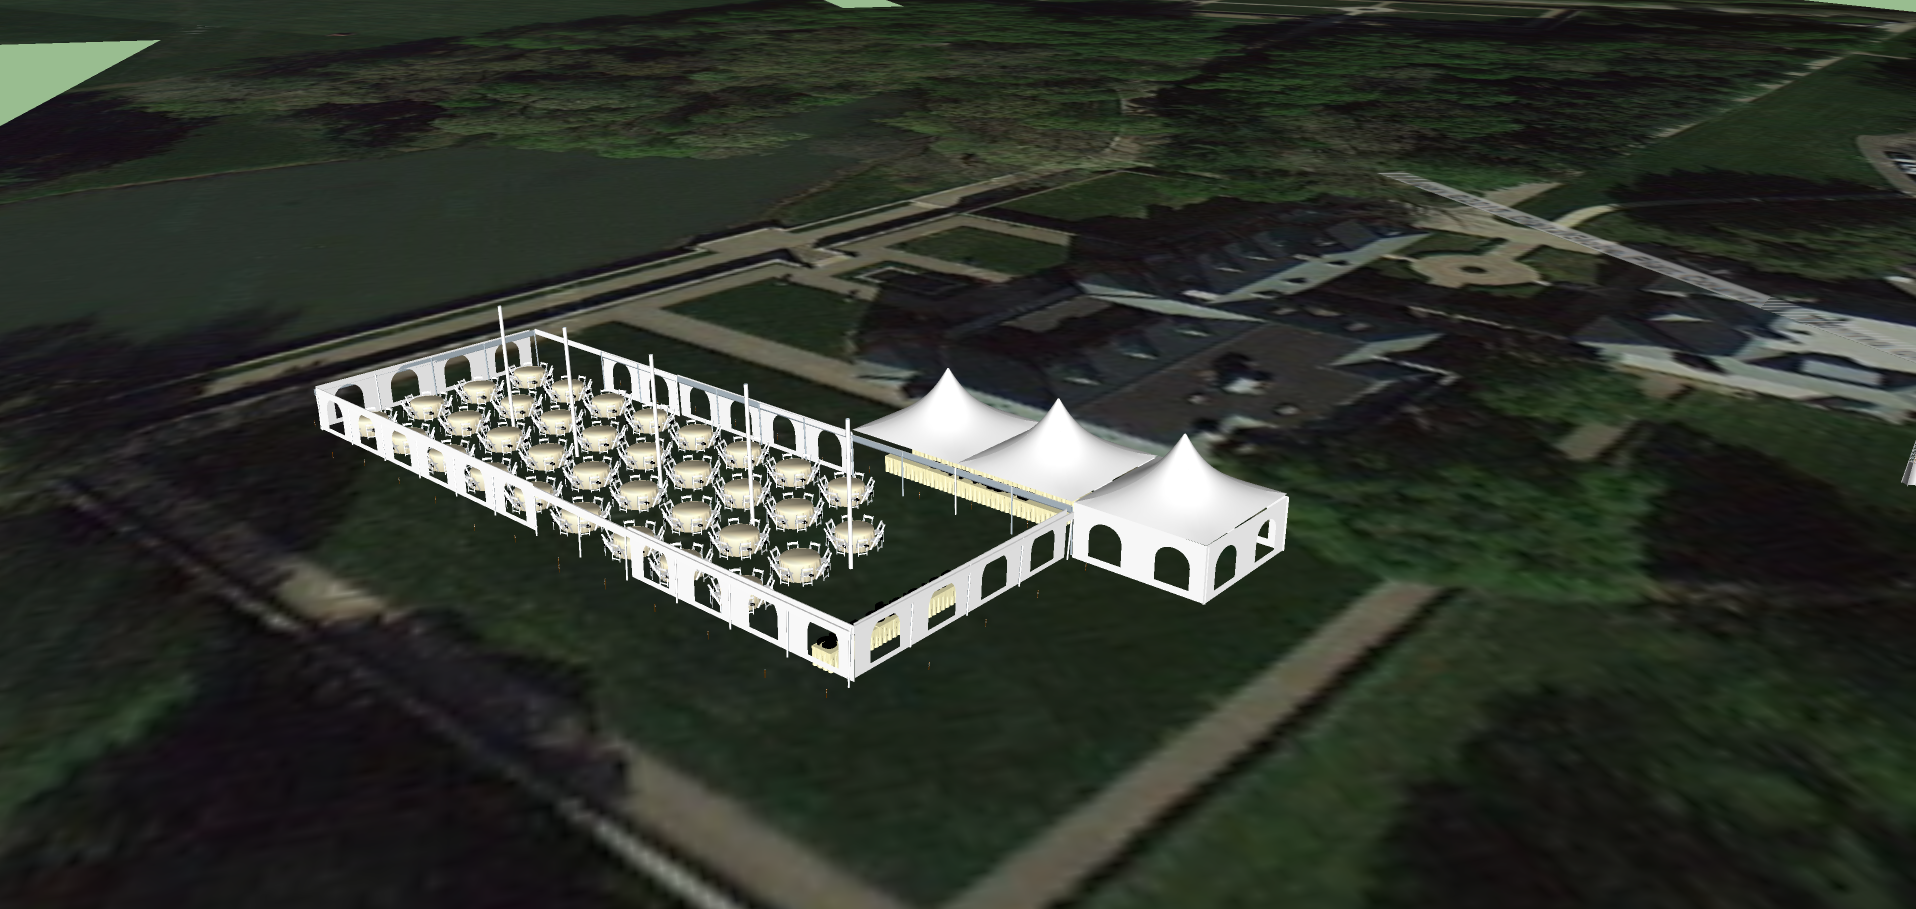 9.28.2015 Allerton park other side view.png